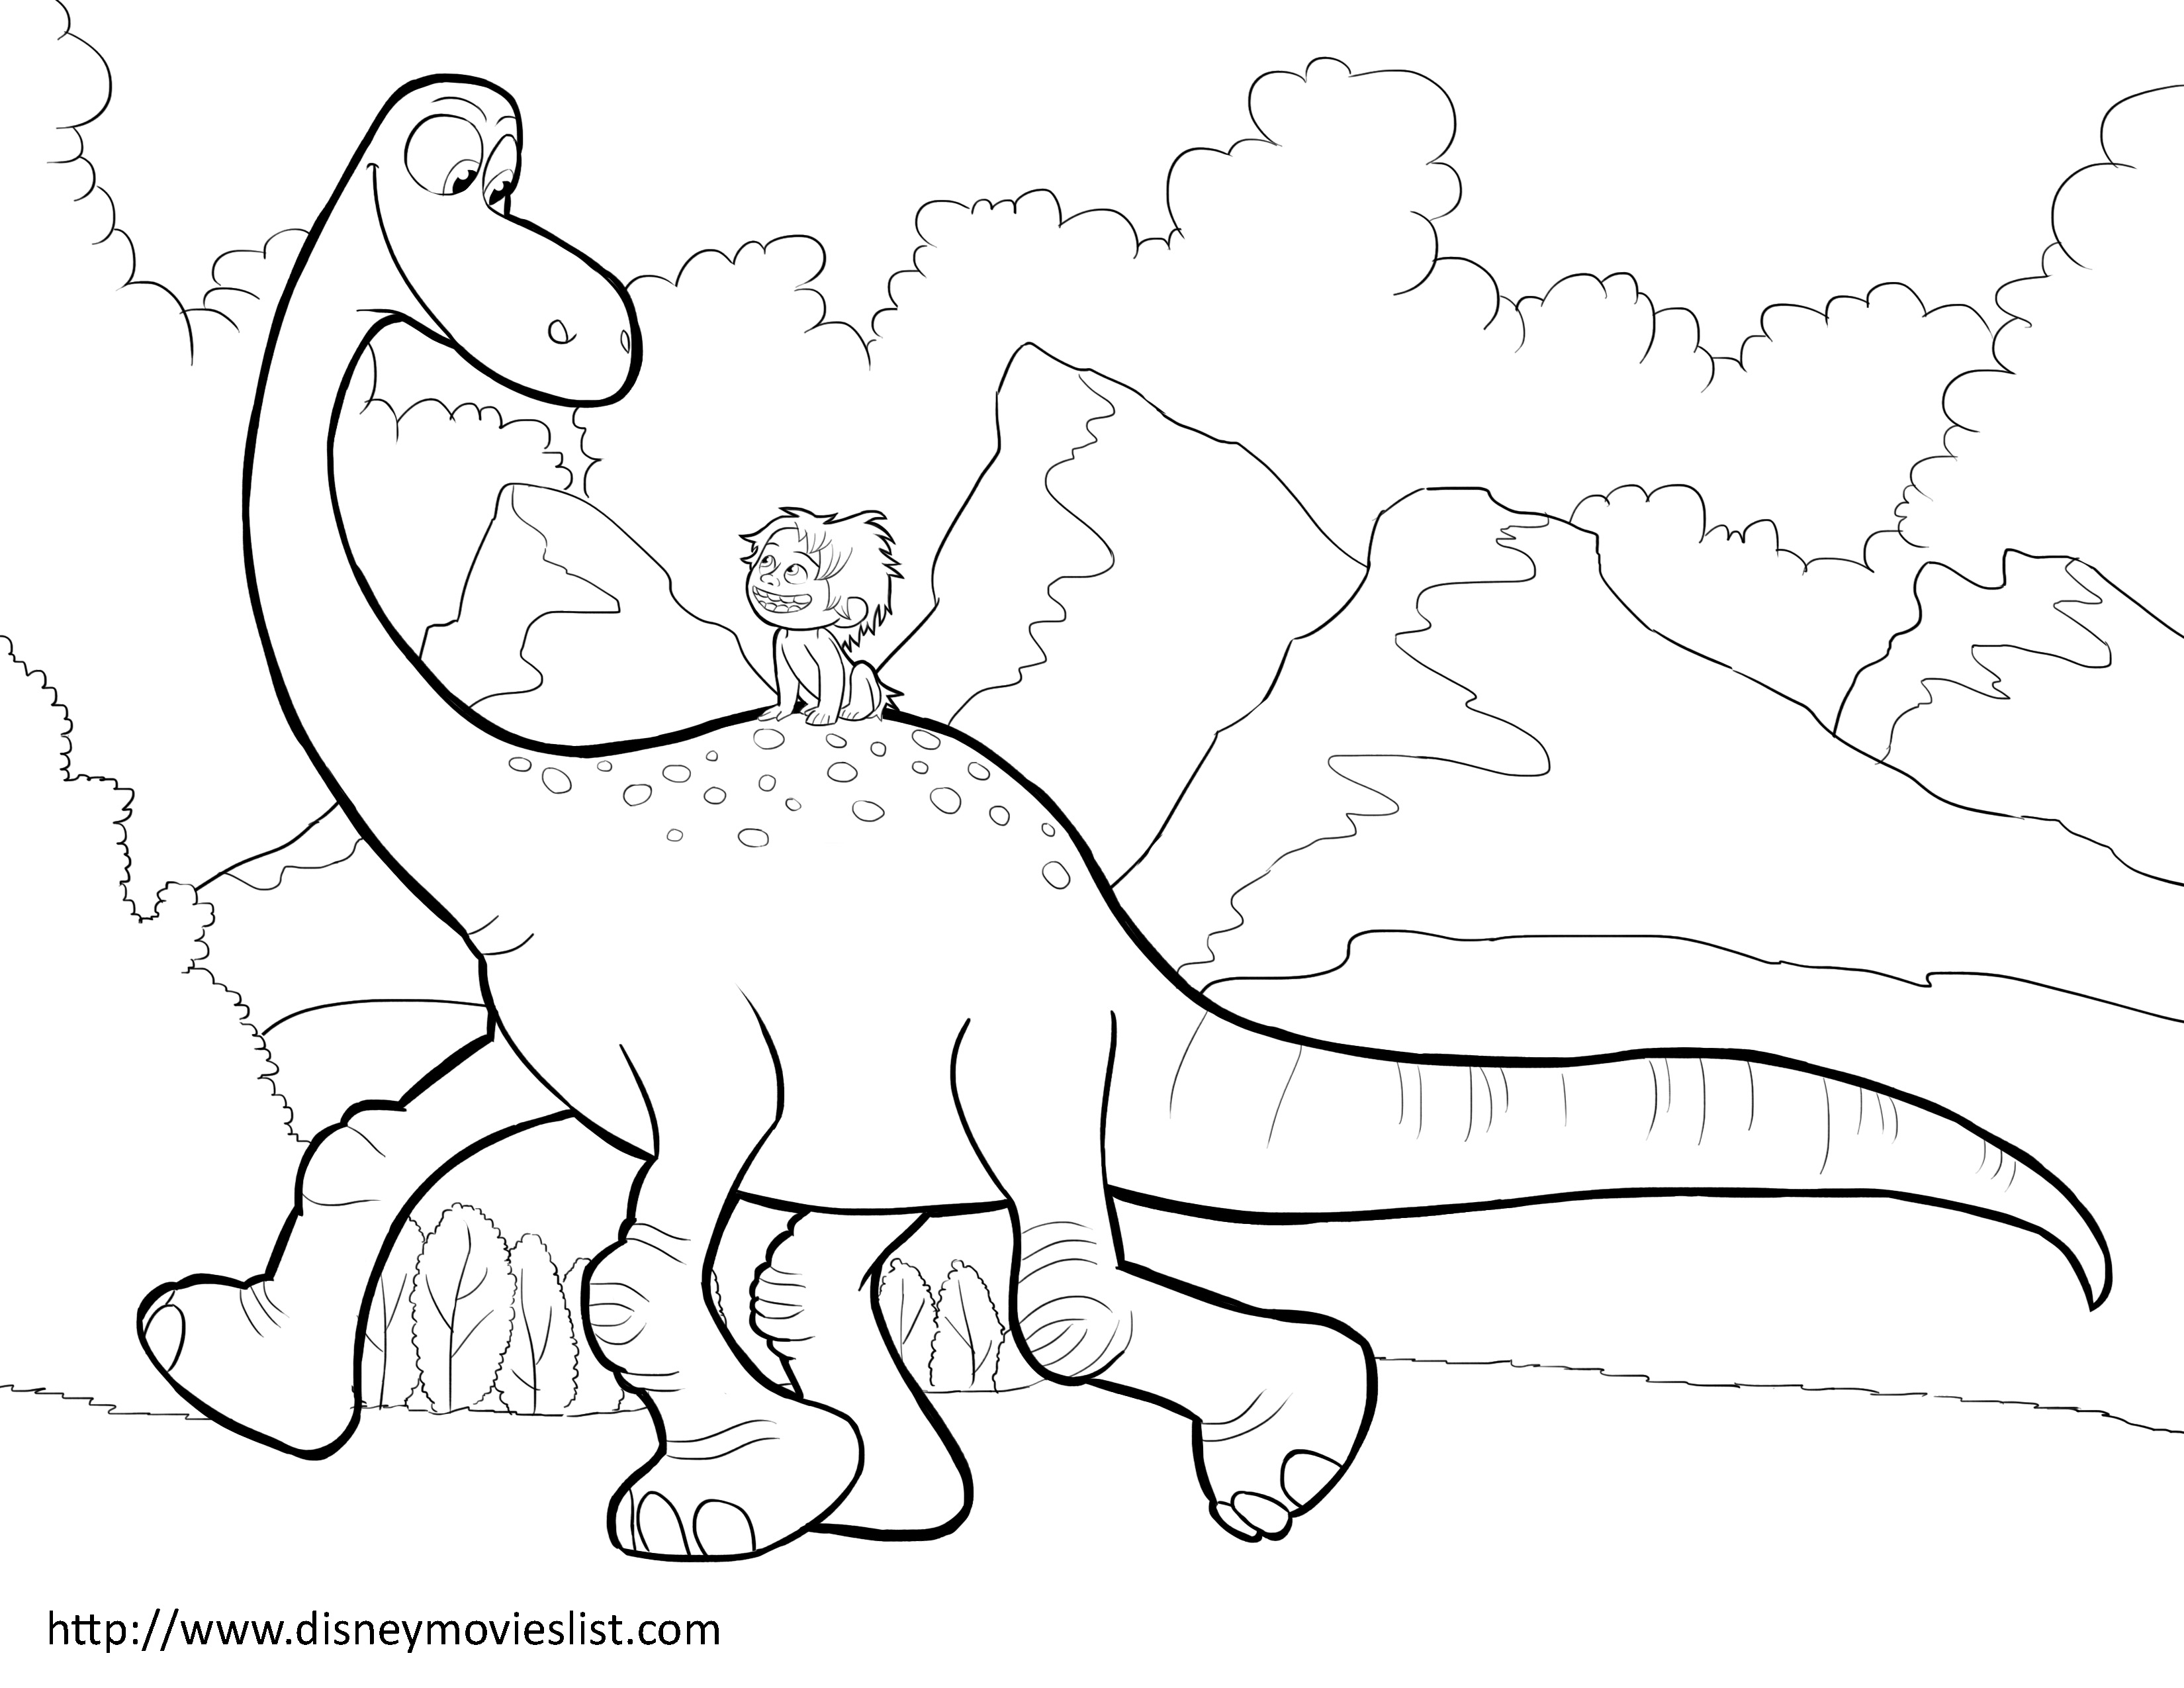 Free betty boop coloring pages to print -  Good Dinosaur Coloring Pages